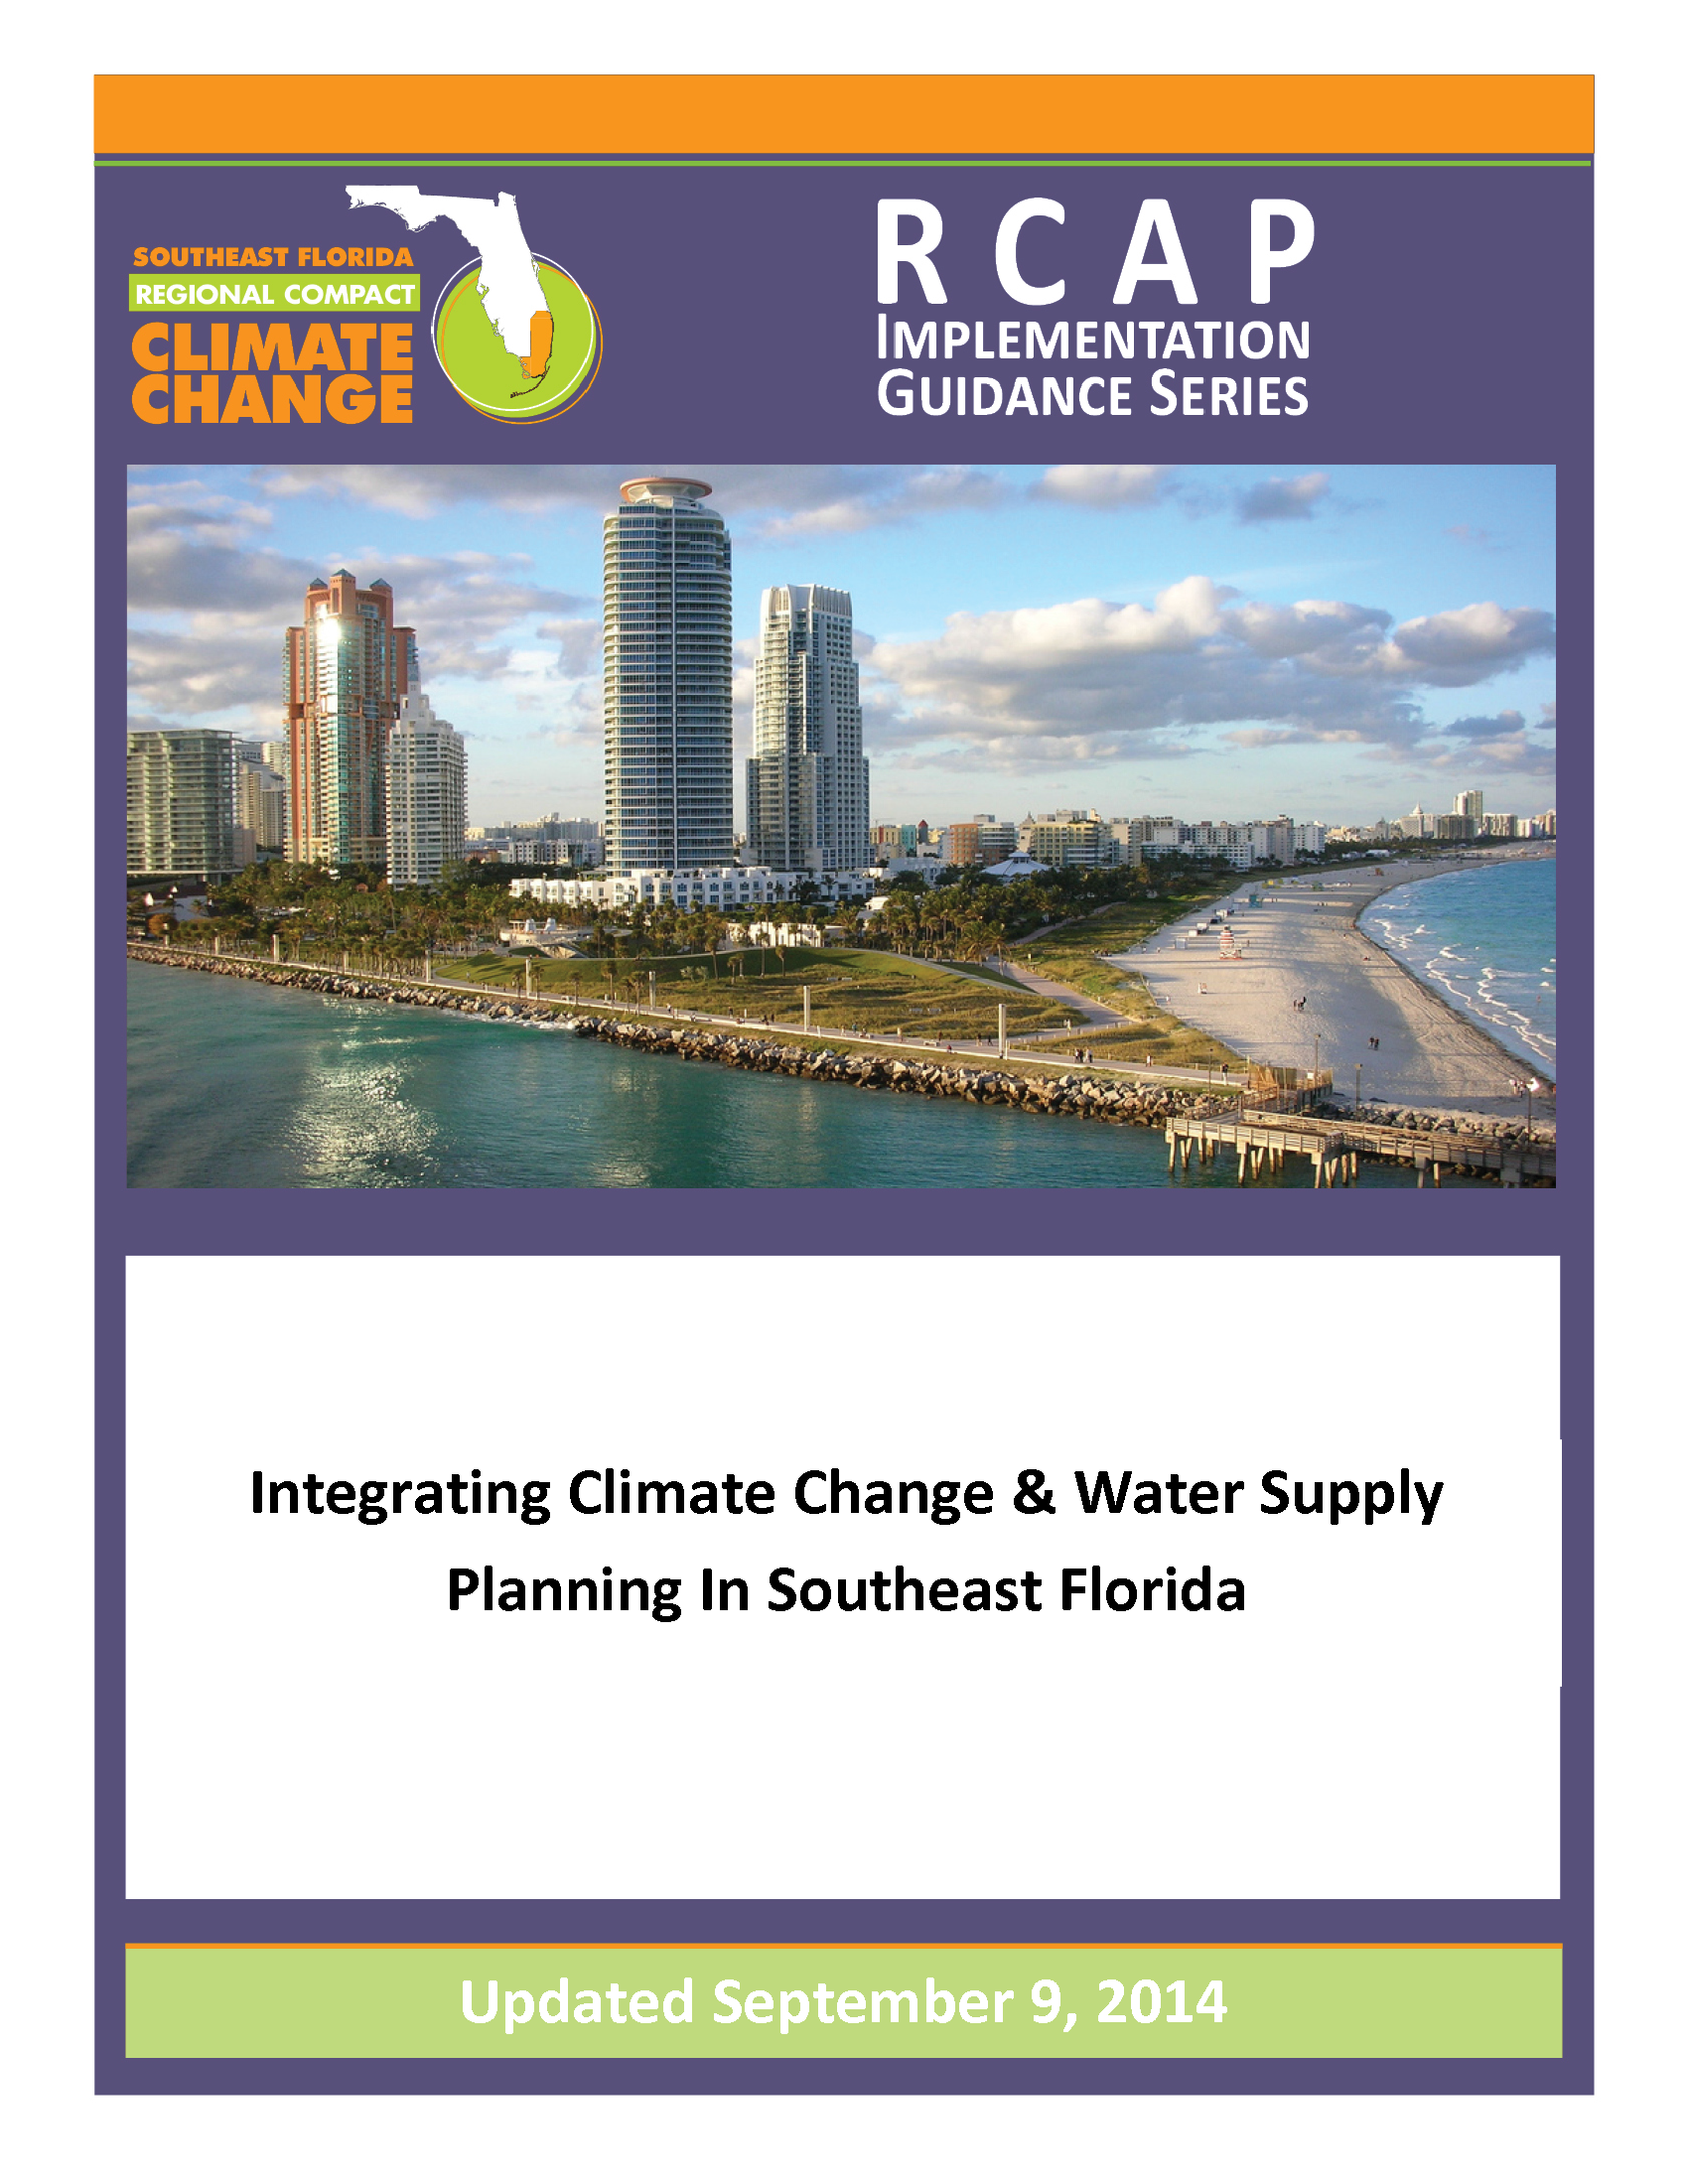 http://www.southeastfloridaclimatecompact.org//wp-content/uploads/2014/09/rcap-igd-water-supply-final-9-9.png